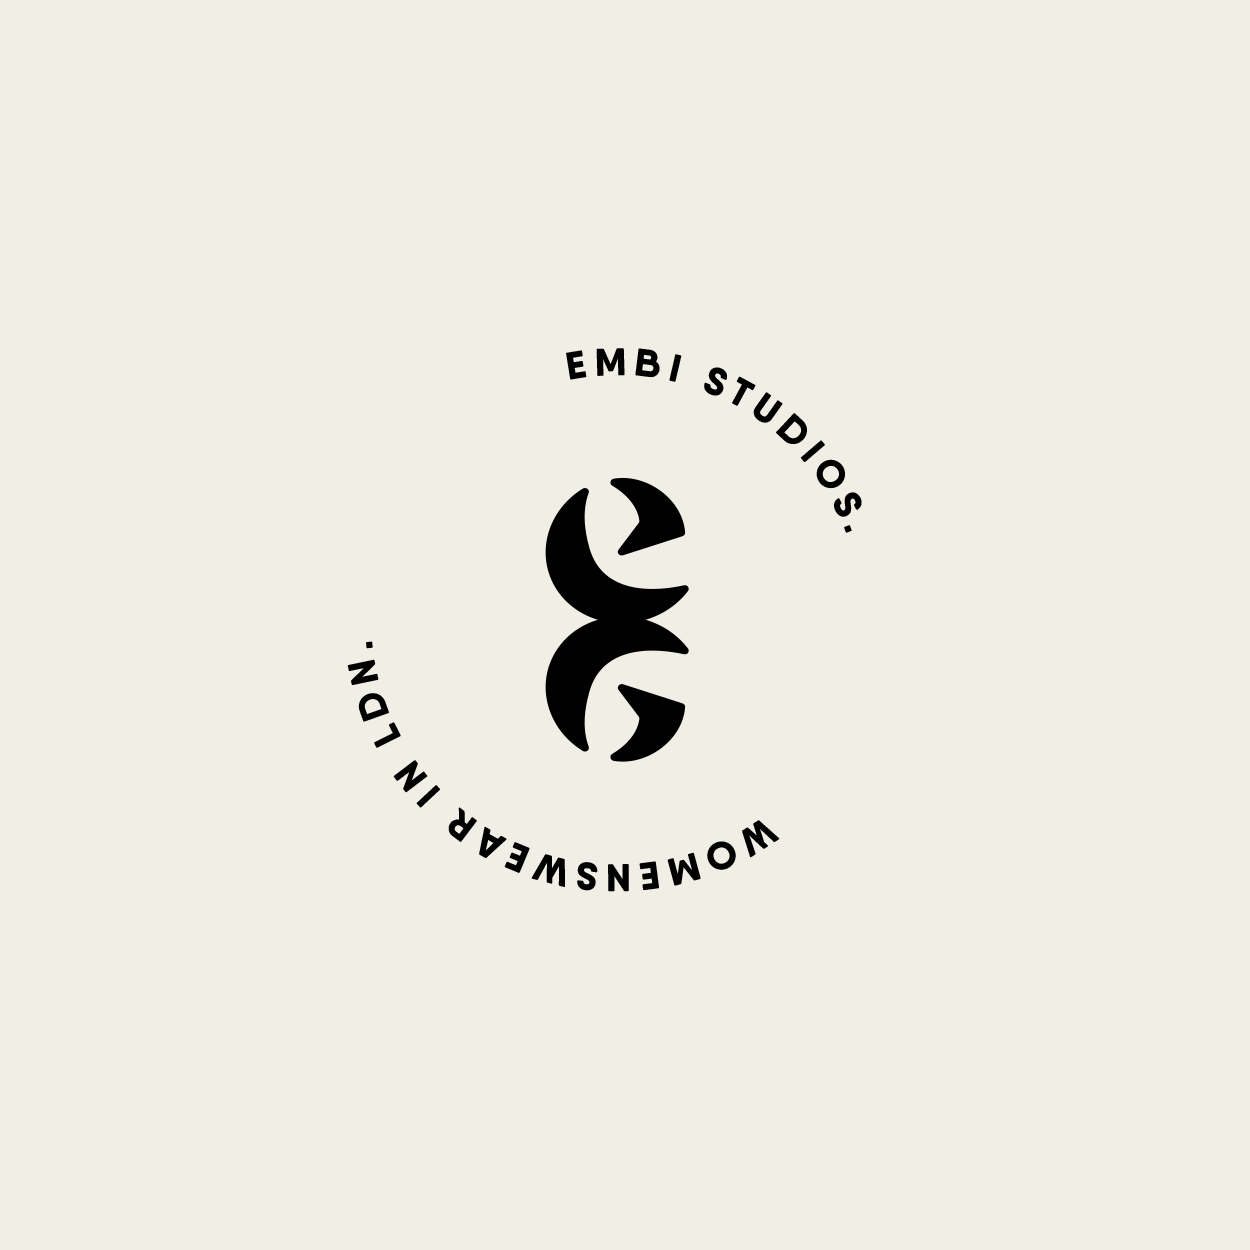 Embi Studios, London-based clothing line offering unique items and limited edition seasons